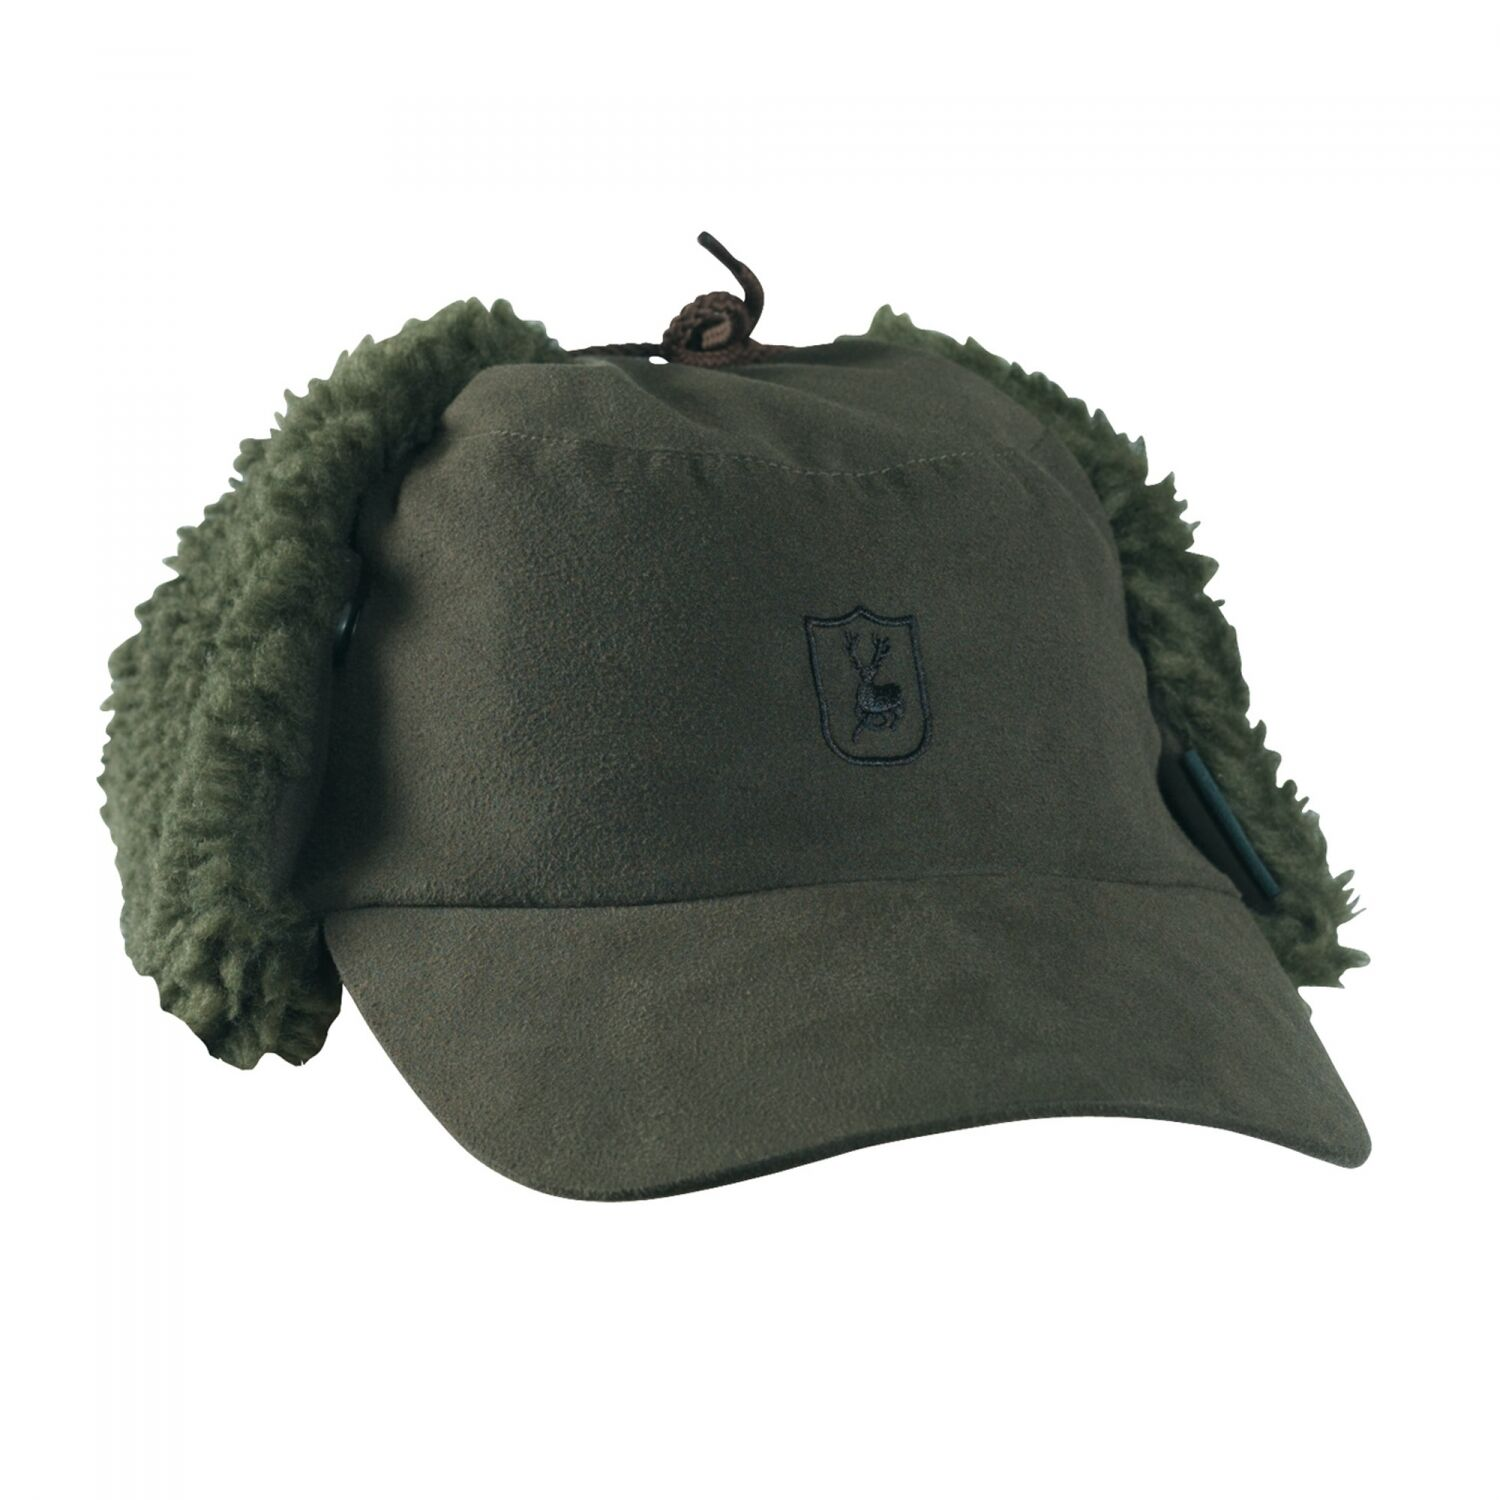 DEERHUNTER CHAMELEON 2G WINTER HAT